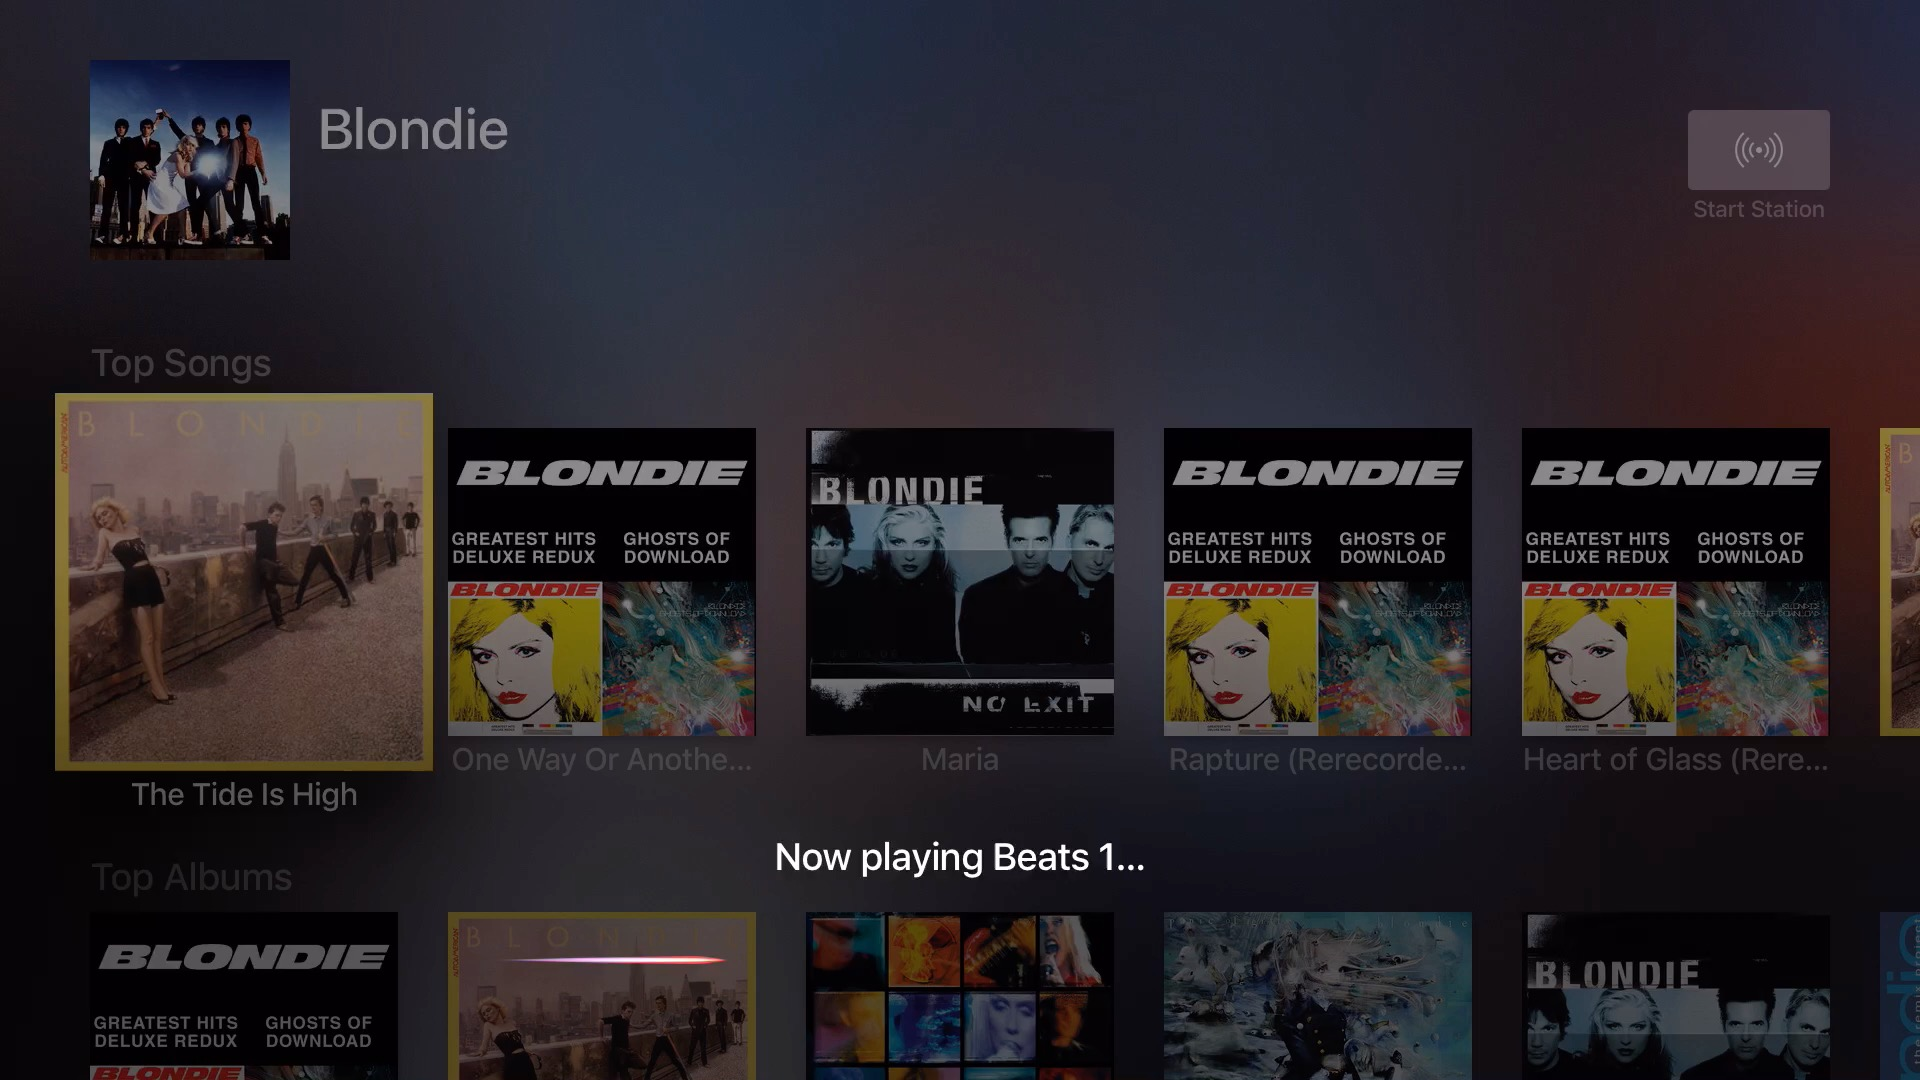 Play Beats 1 Siri Apple TV